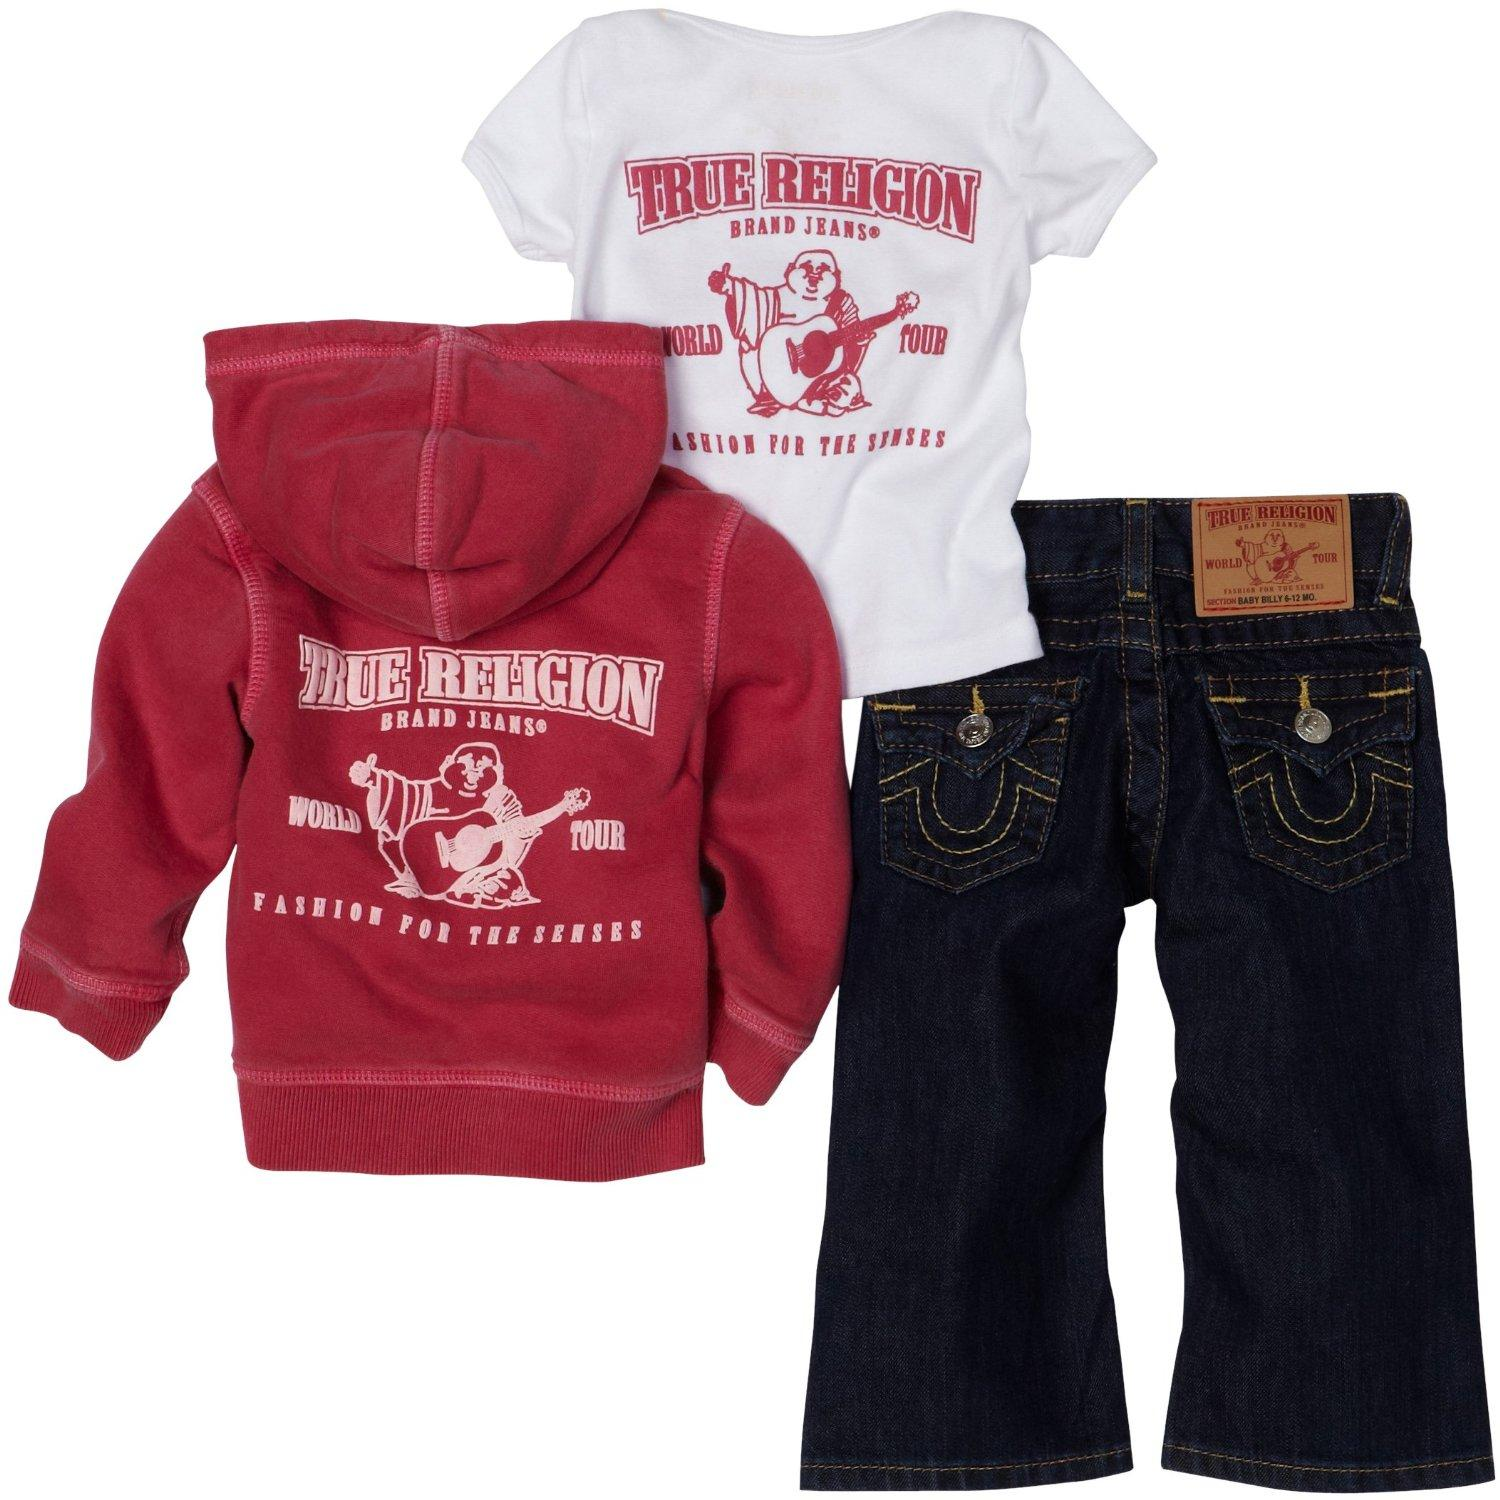 f54d6771e True religion for baby girl - Amazon student free 2 day shipping code